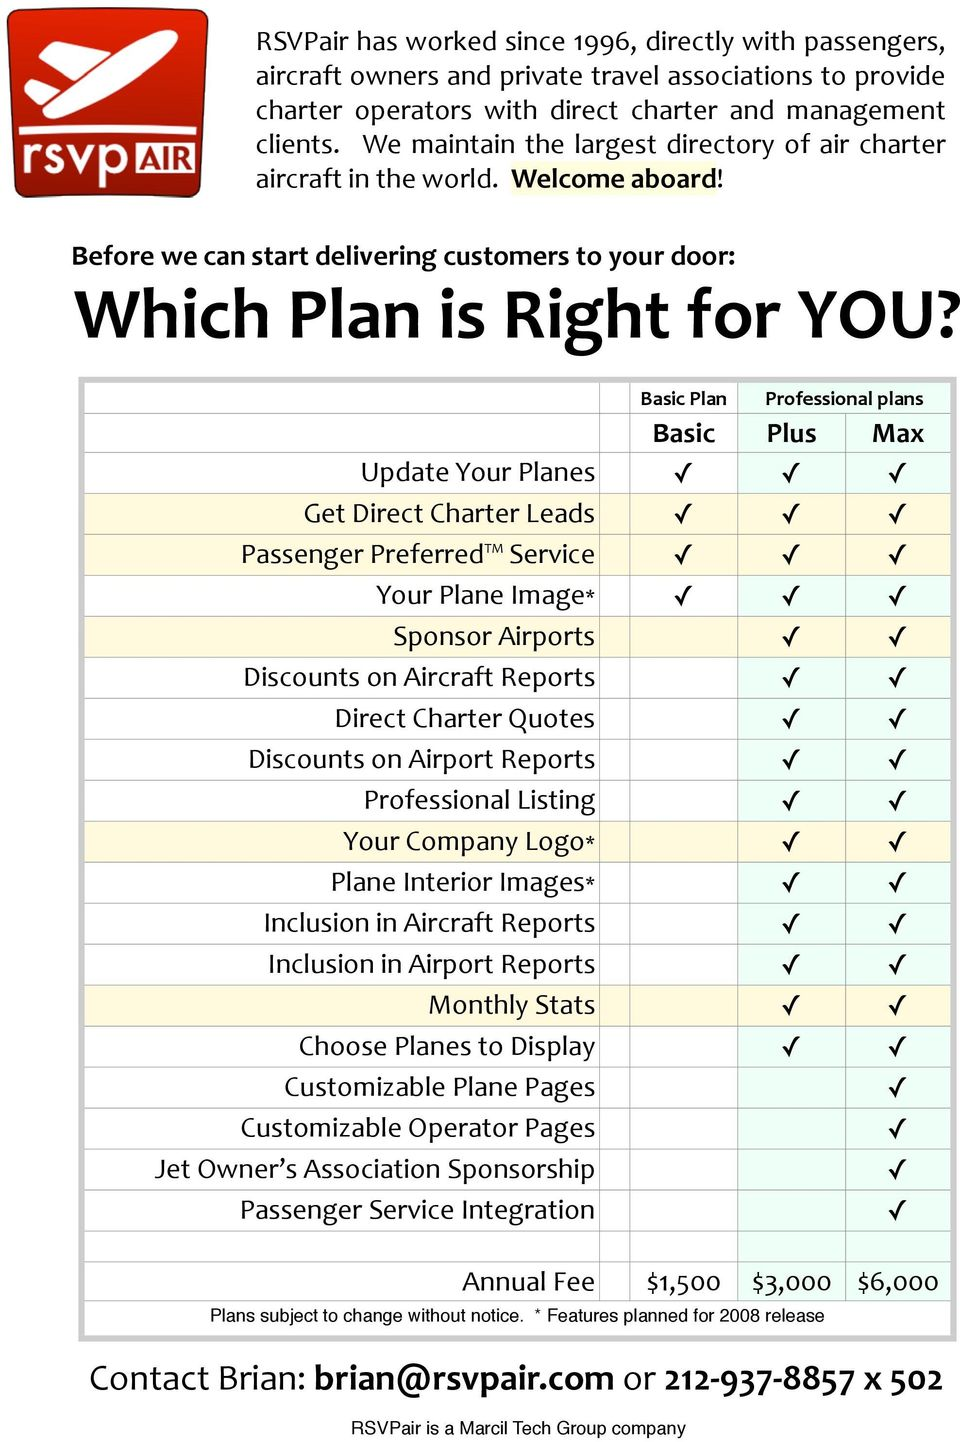 Basic Plan Professional plans Basic Plus Max Update Your Planes Get Direct Charter Leads Passenger Preferred Service Your Plane Image* Sponsor Airports Discounts on Aircraft Reports Direct Charter